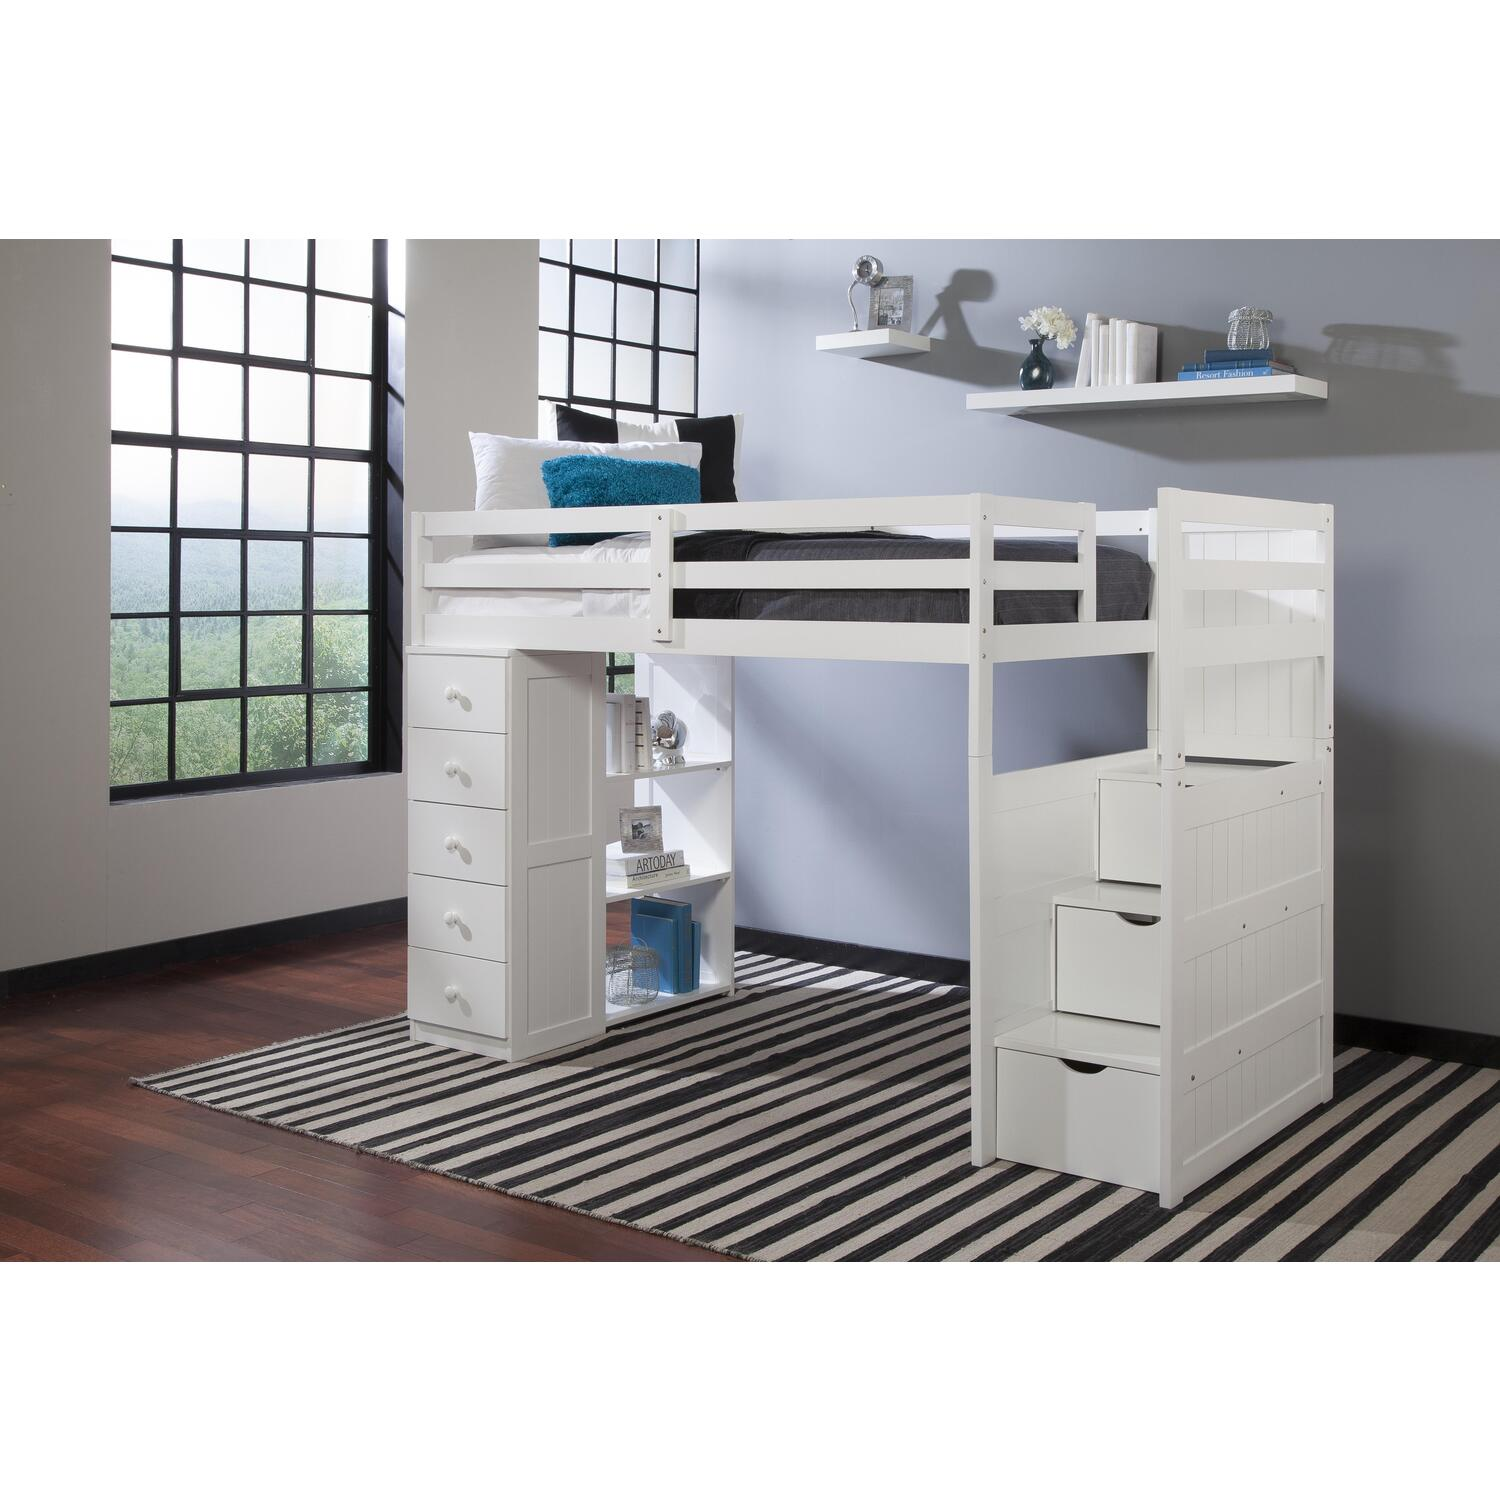 canwood mountaineer twin loft bed with storage tower and built in stairs drawers ojcommerce. Black Bedroom Furniture Sets. Home Design Ideas